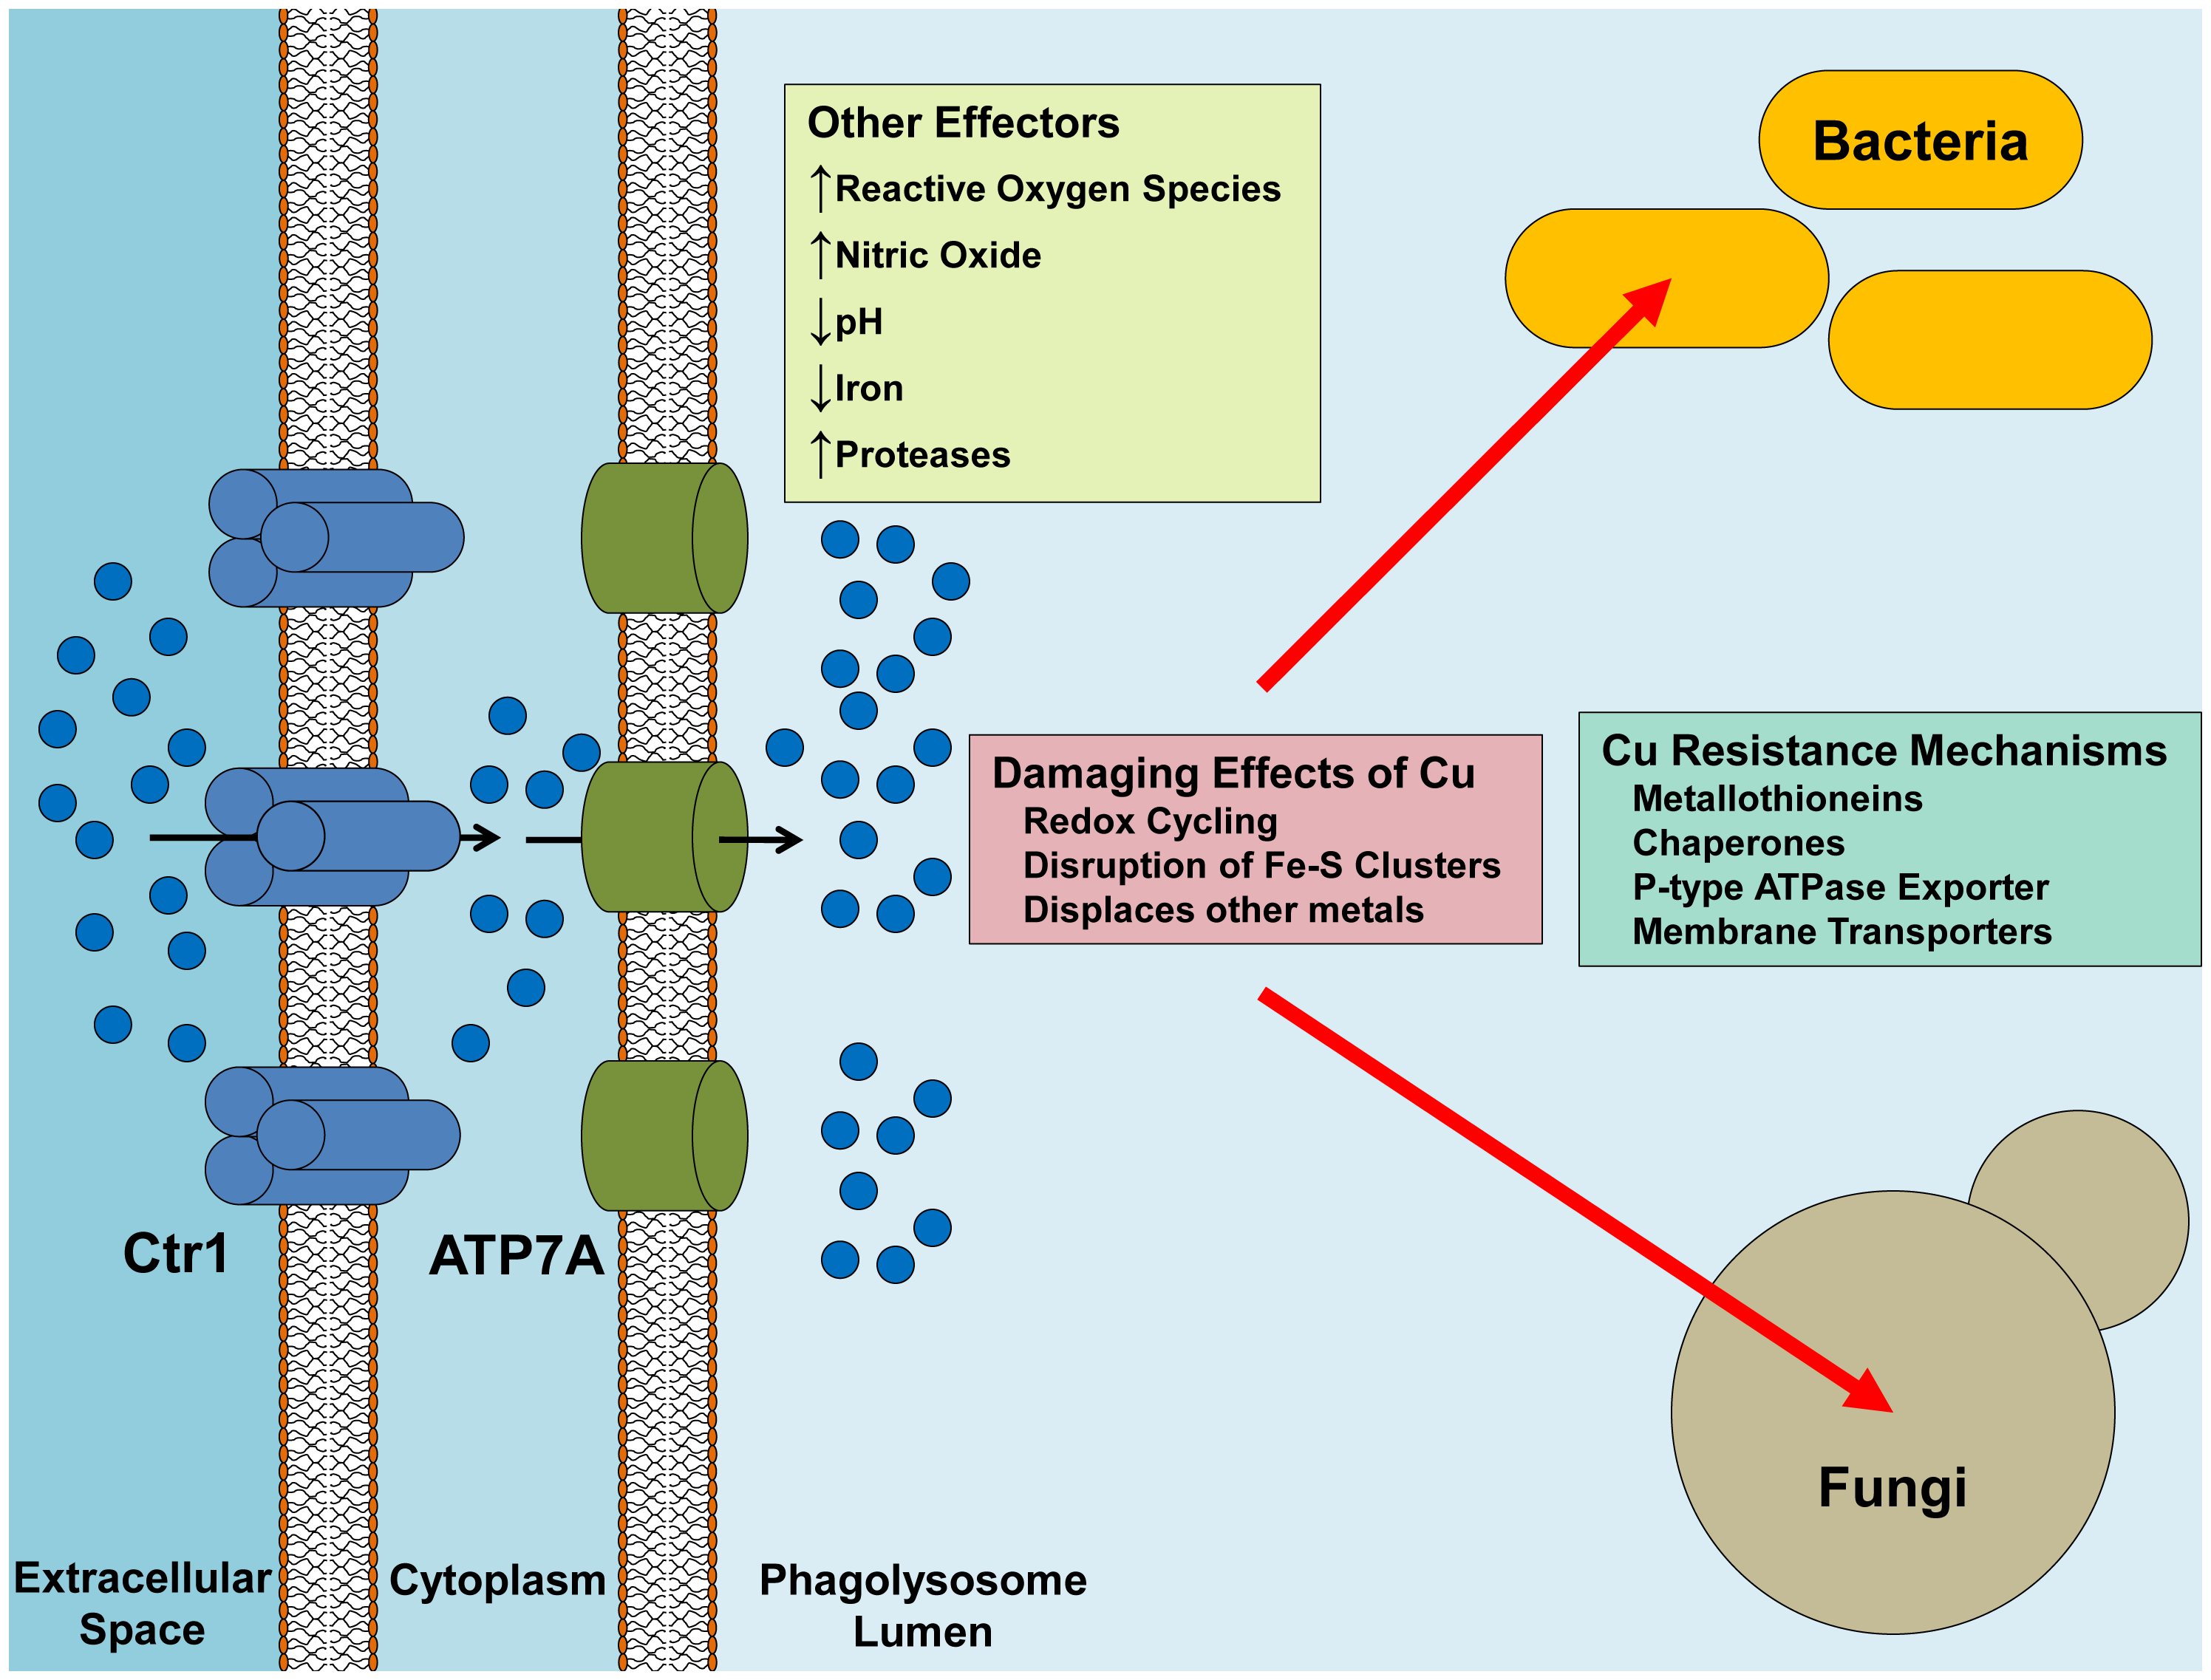 Delivery of Cu from the macrophage to the pathogen.